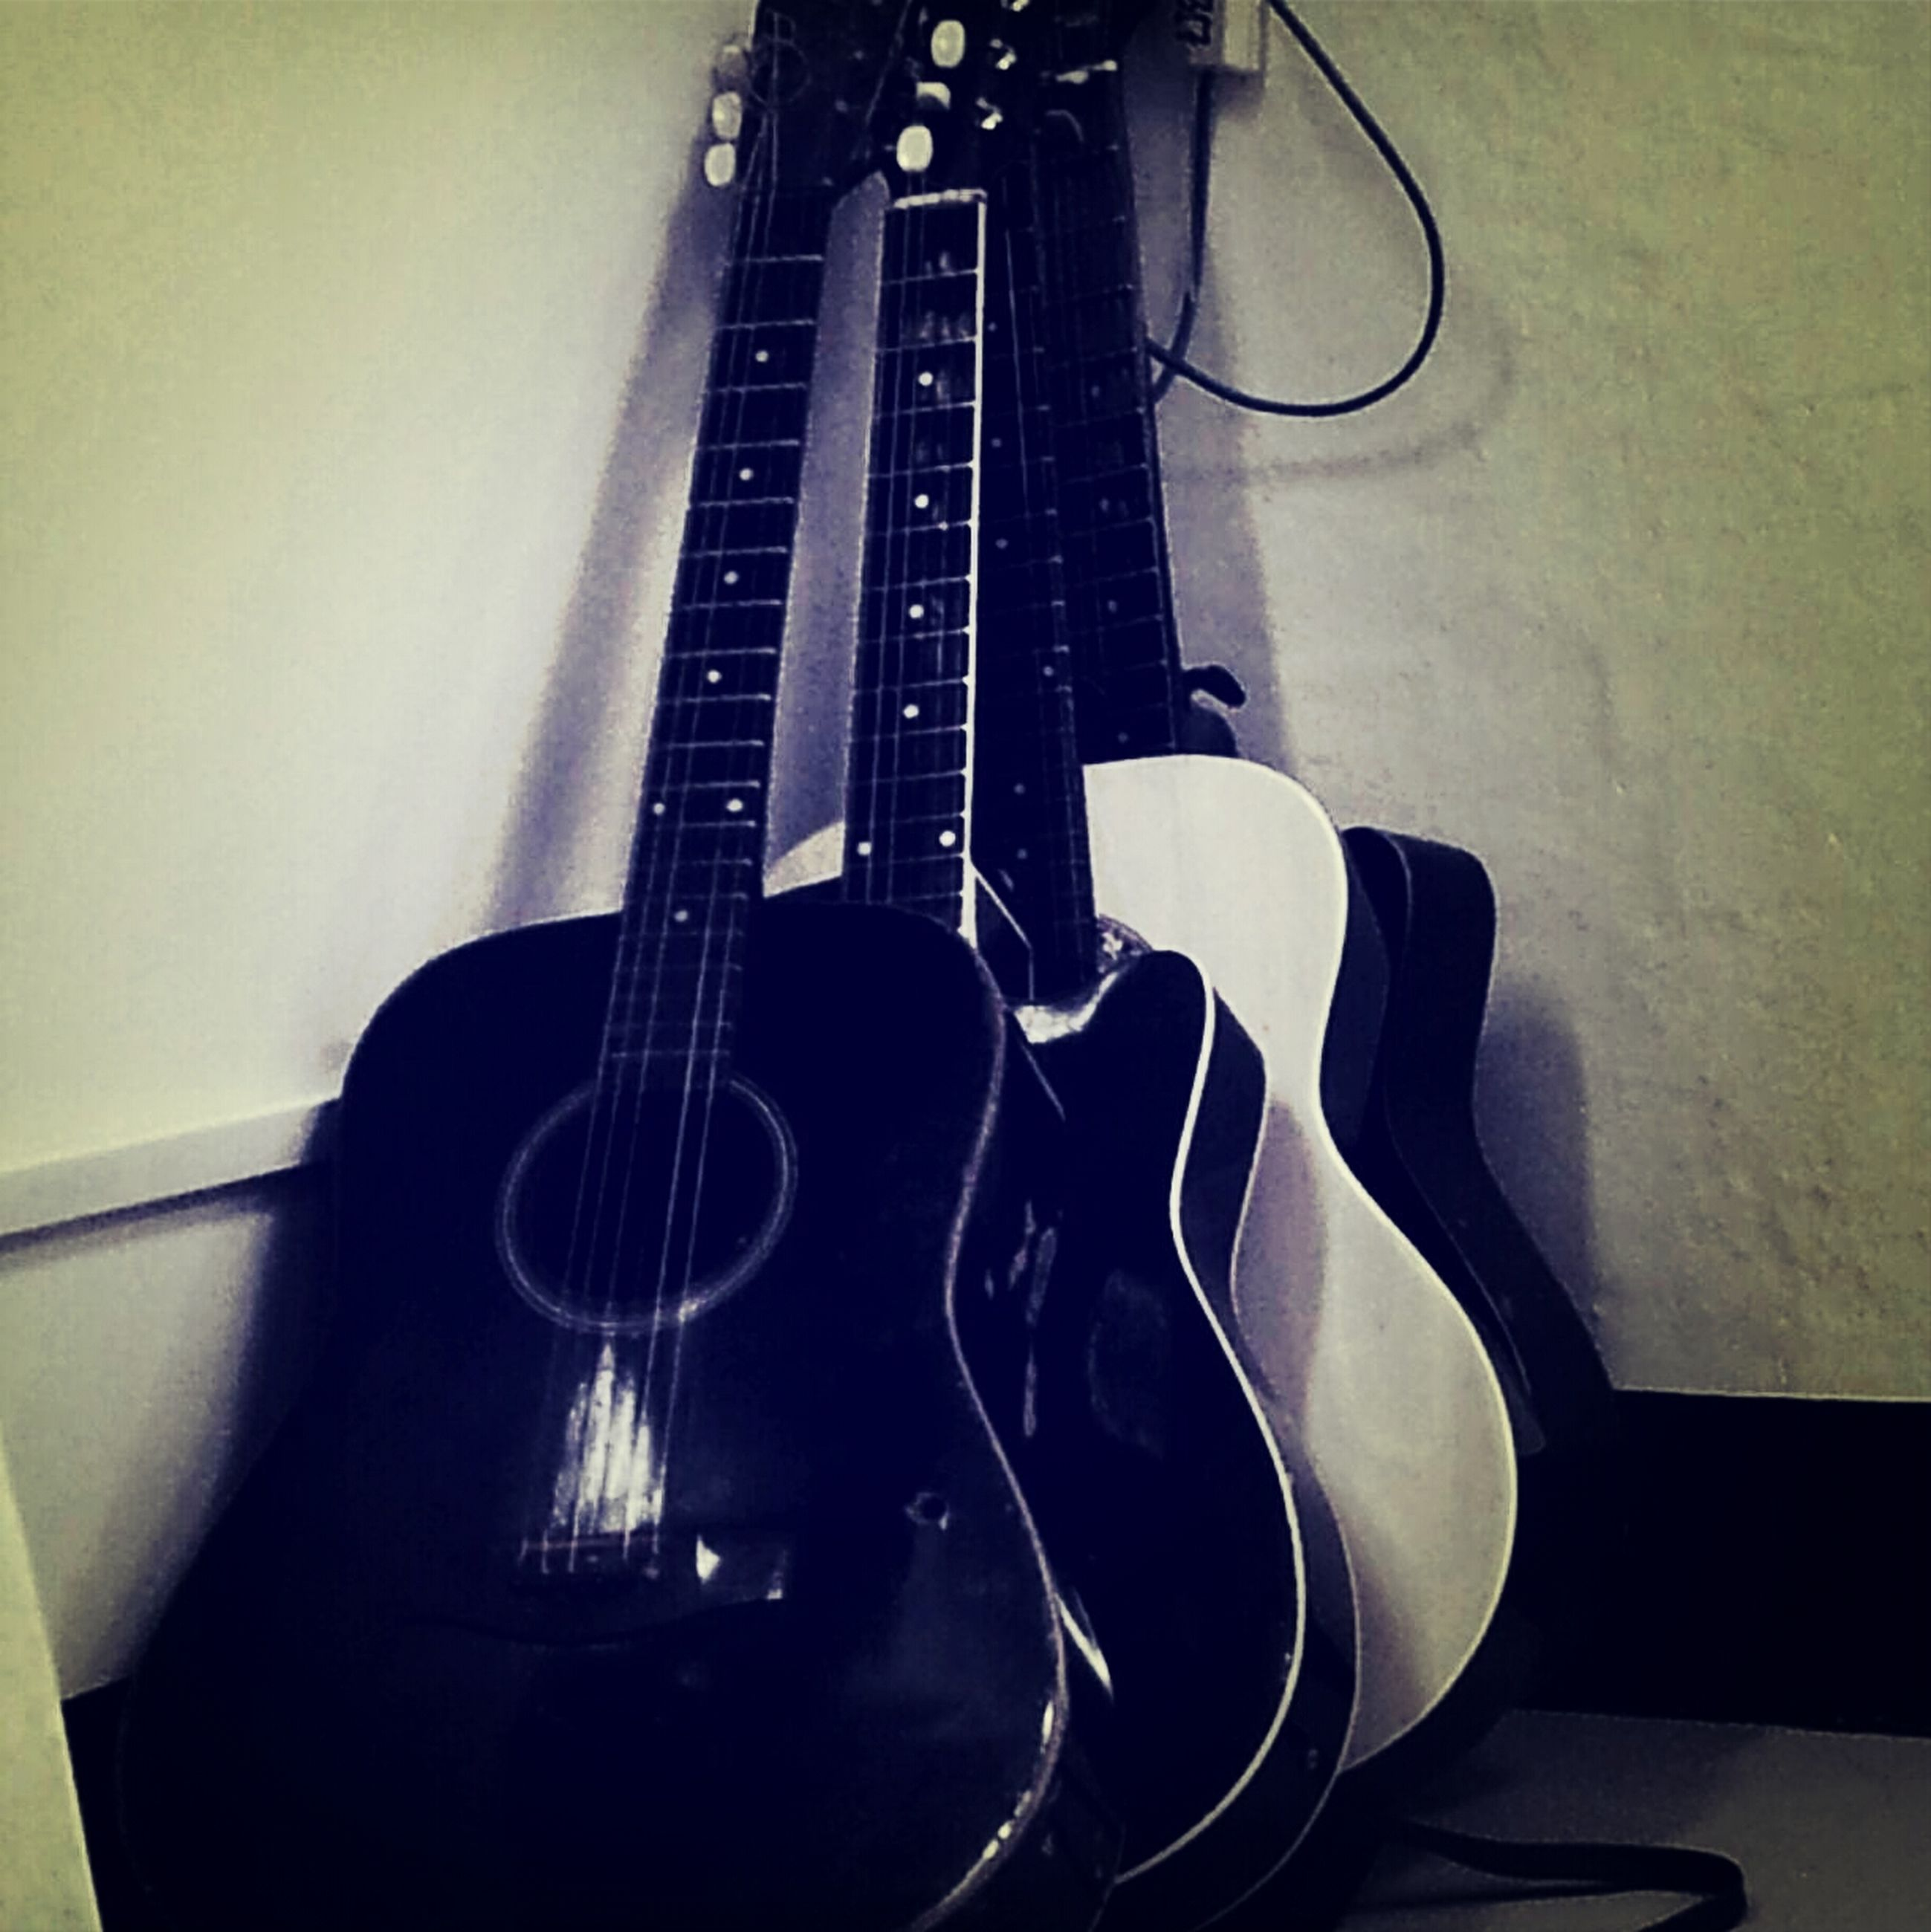 indoors, music, musical instrument, musical equipment, guitar, arts culture and entertainment, technology, musical instrument string, close-up, metal, string instrument, still life, old-fashioned, equipment, high angle view, home interior, no people, retro styled, connection, acoustic guitar